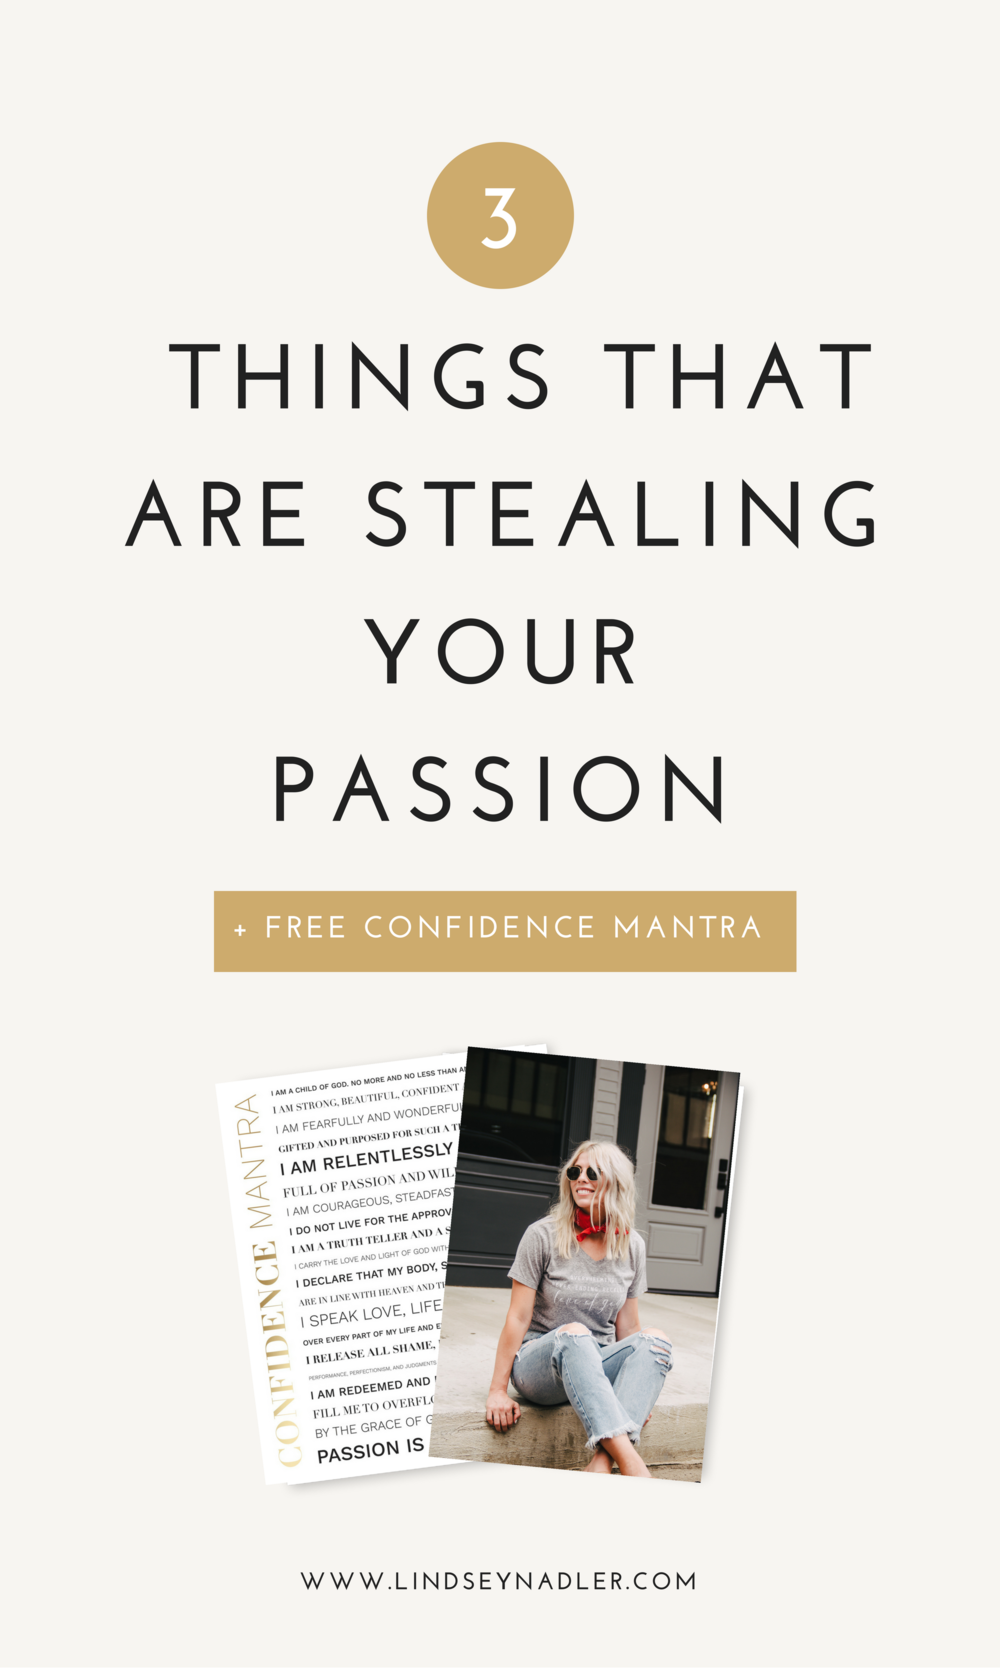 3 Things That are Stealing Your Passion